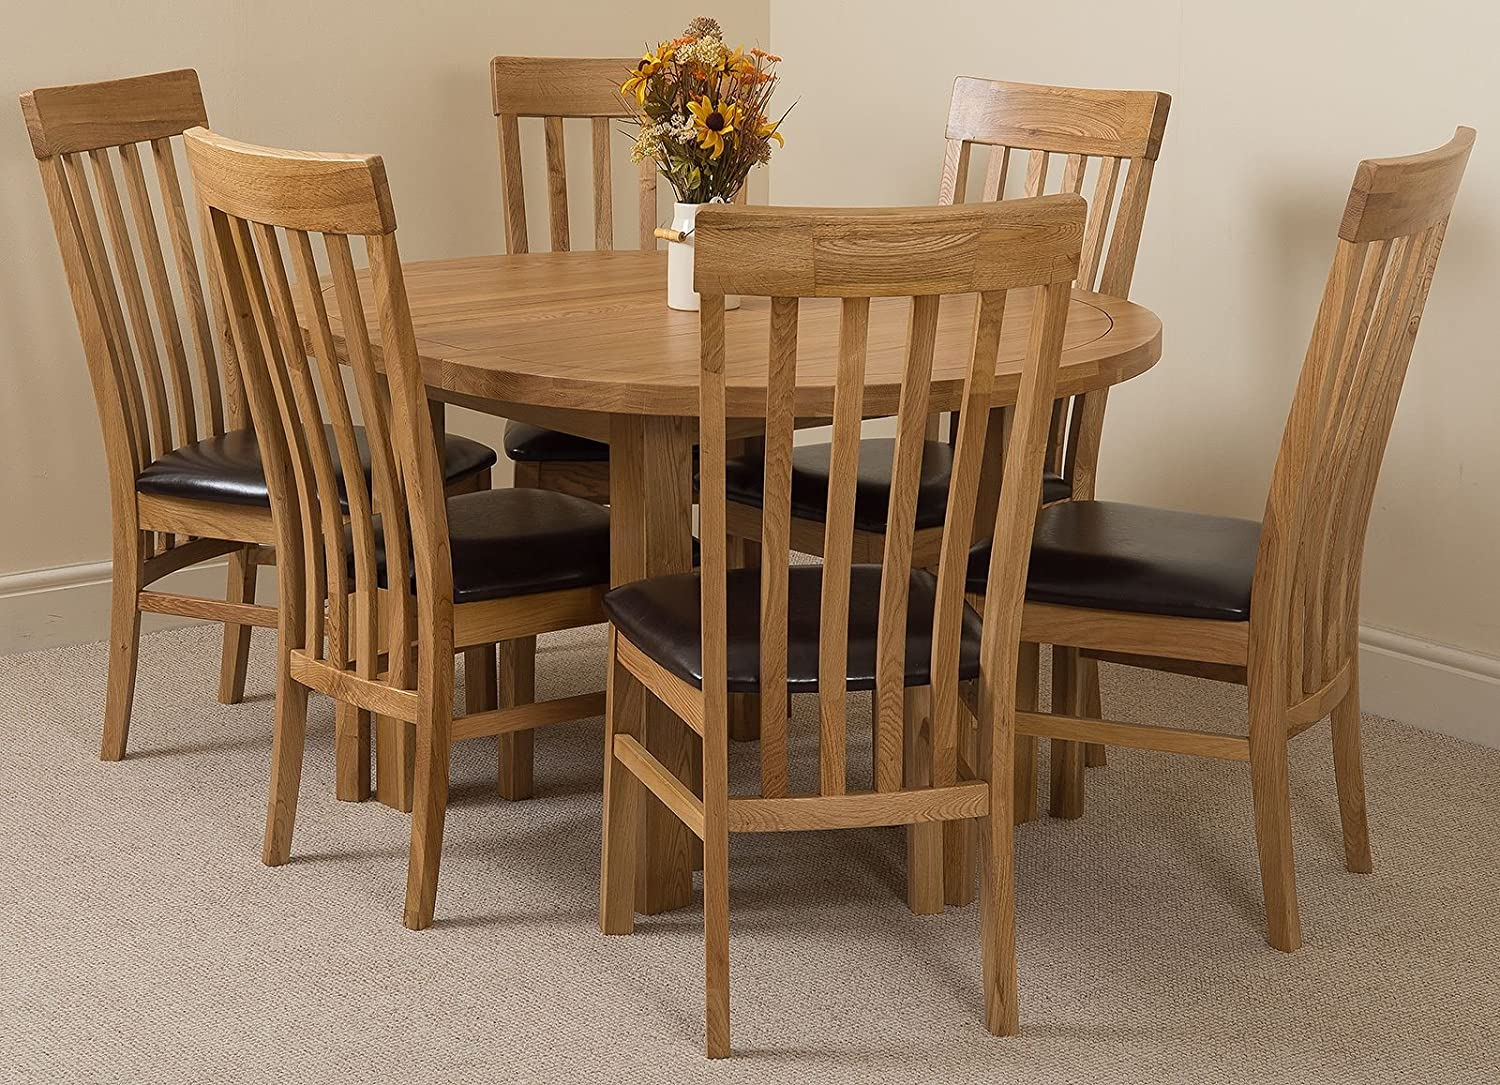 Modern furniture direct edmonton extending oval solid oak dining table 6 solid oak leather chairs 100 solid oak 110cm 140cm extending fast free